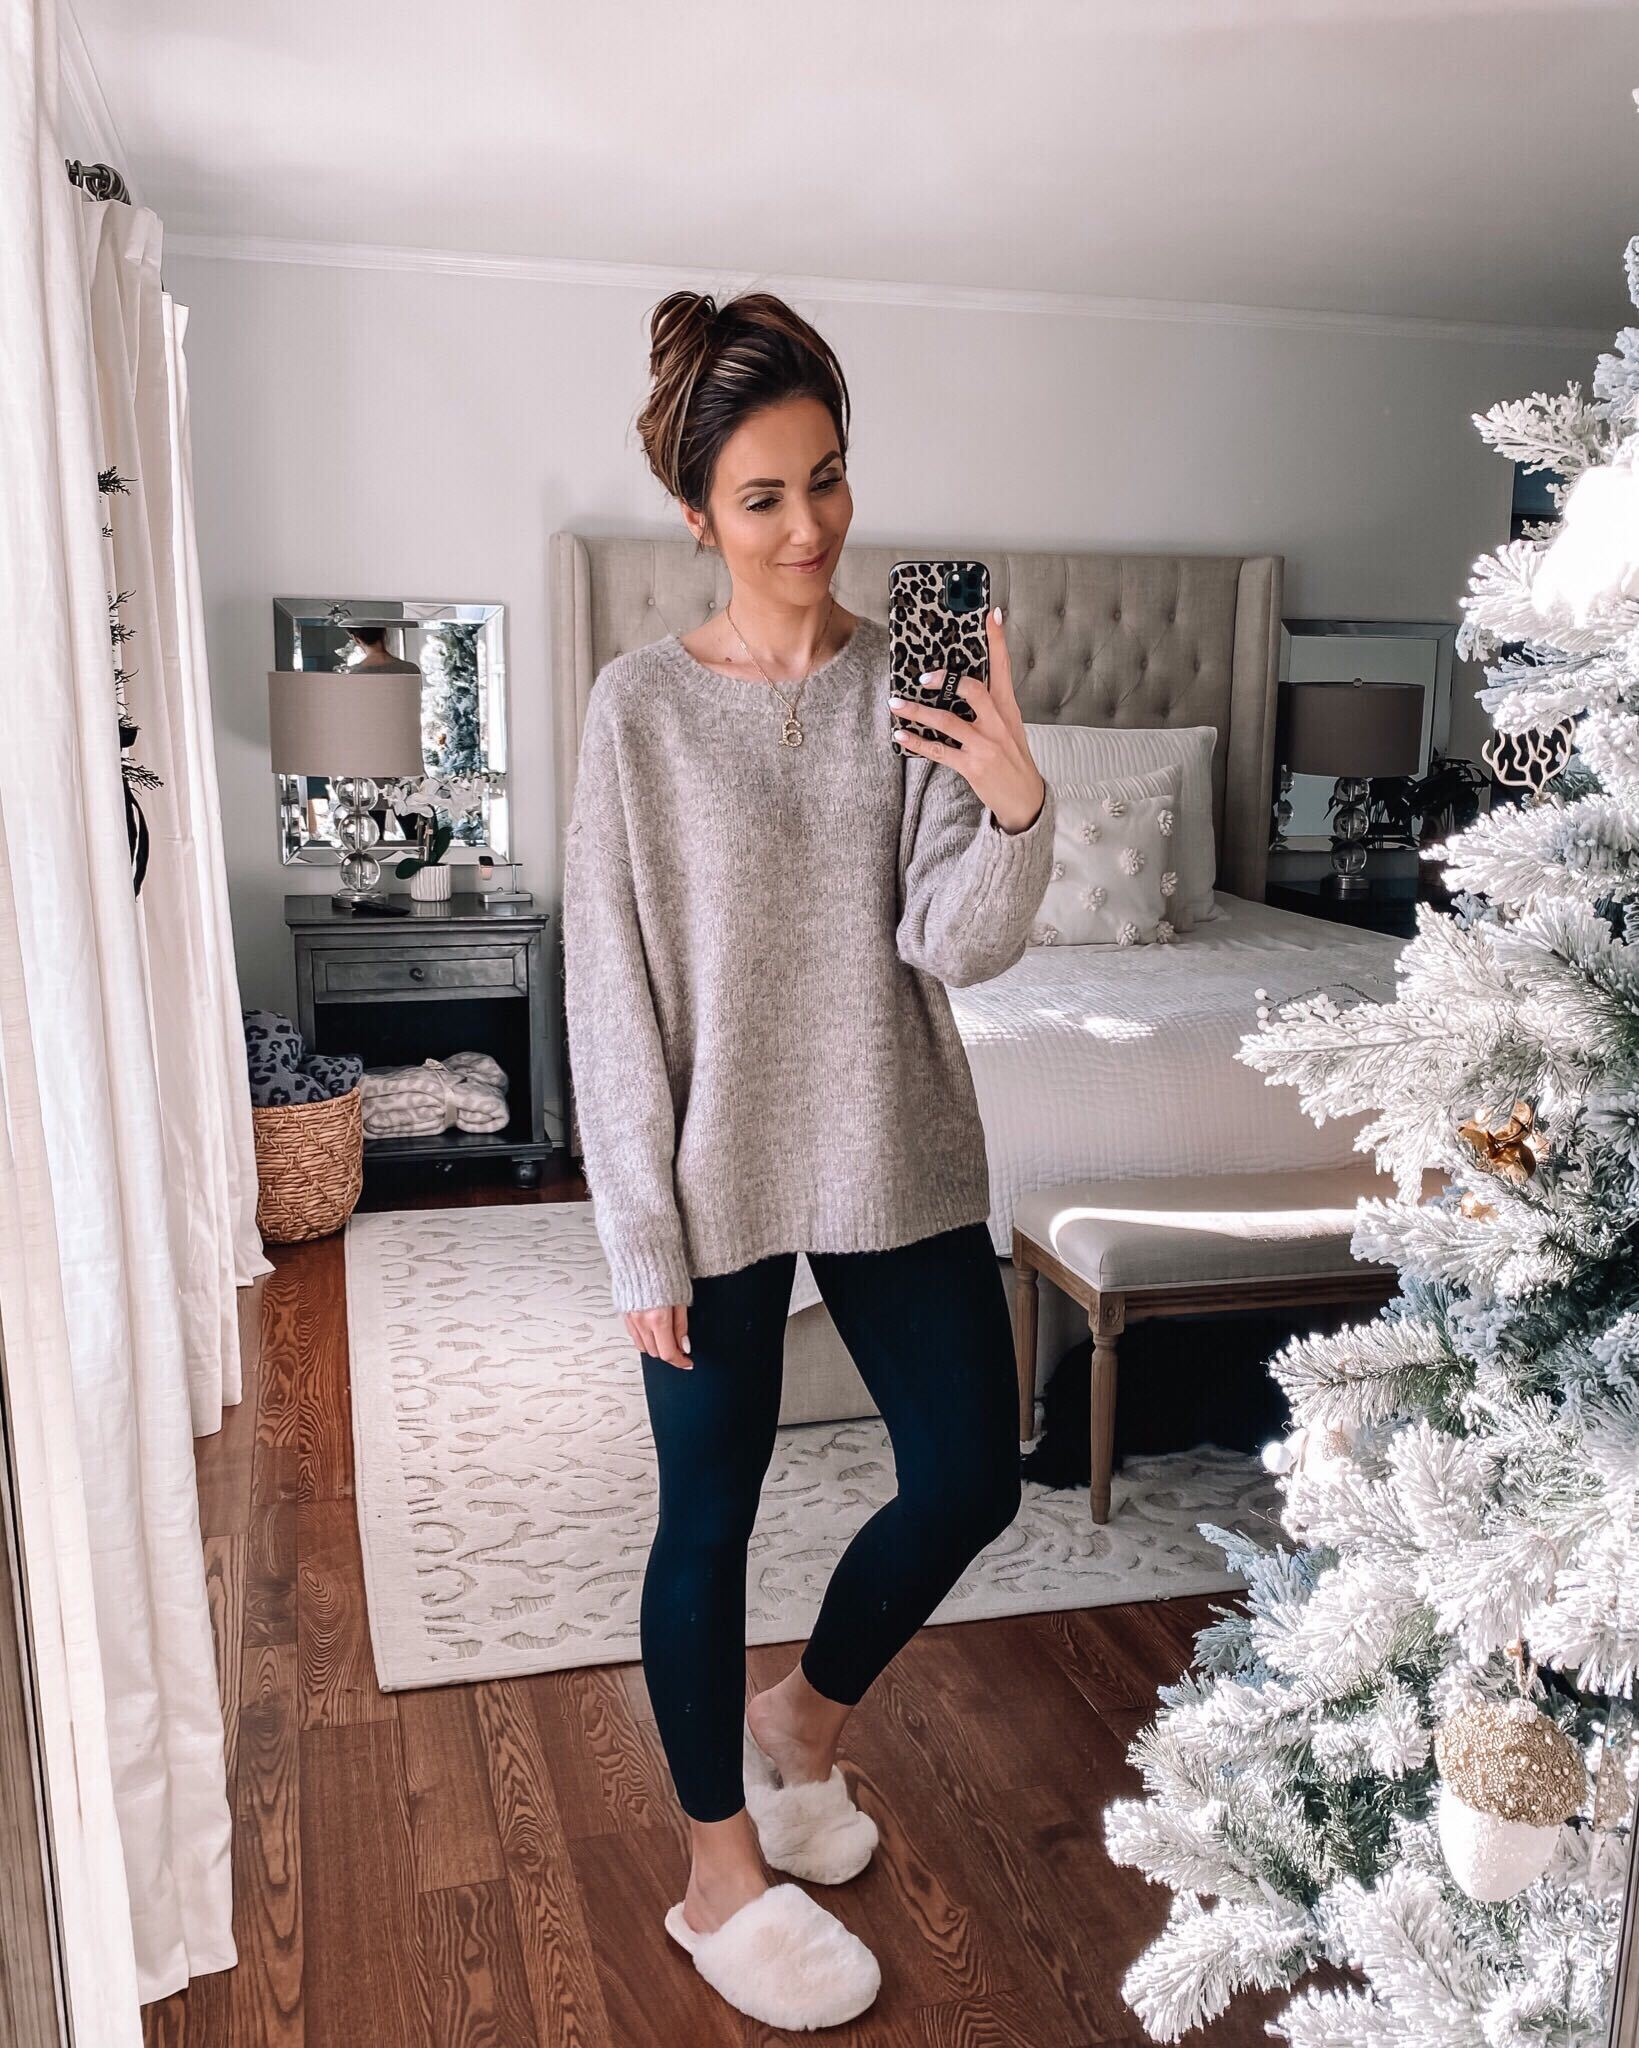 Express sweater with leggings